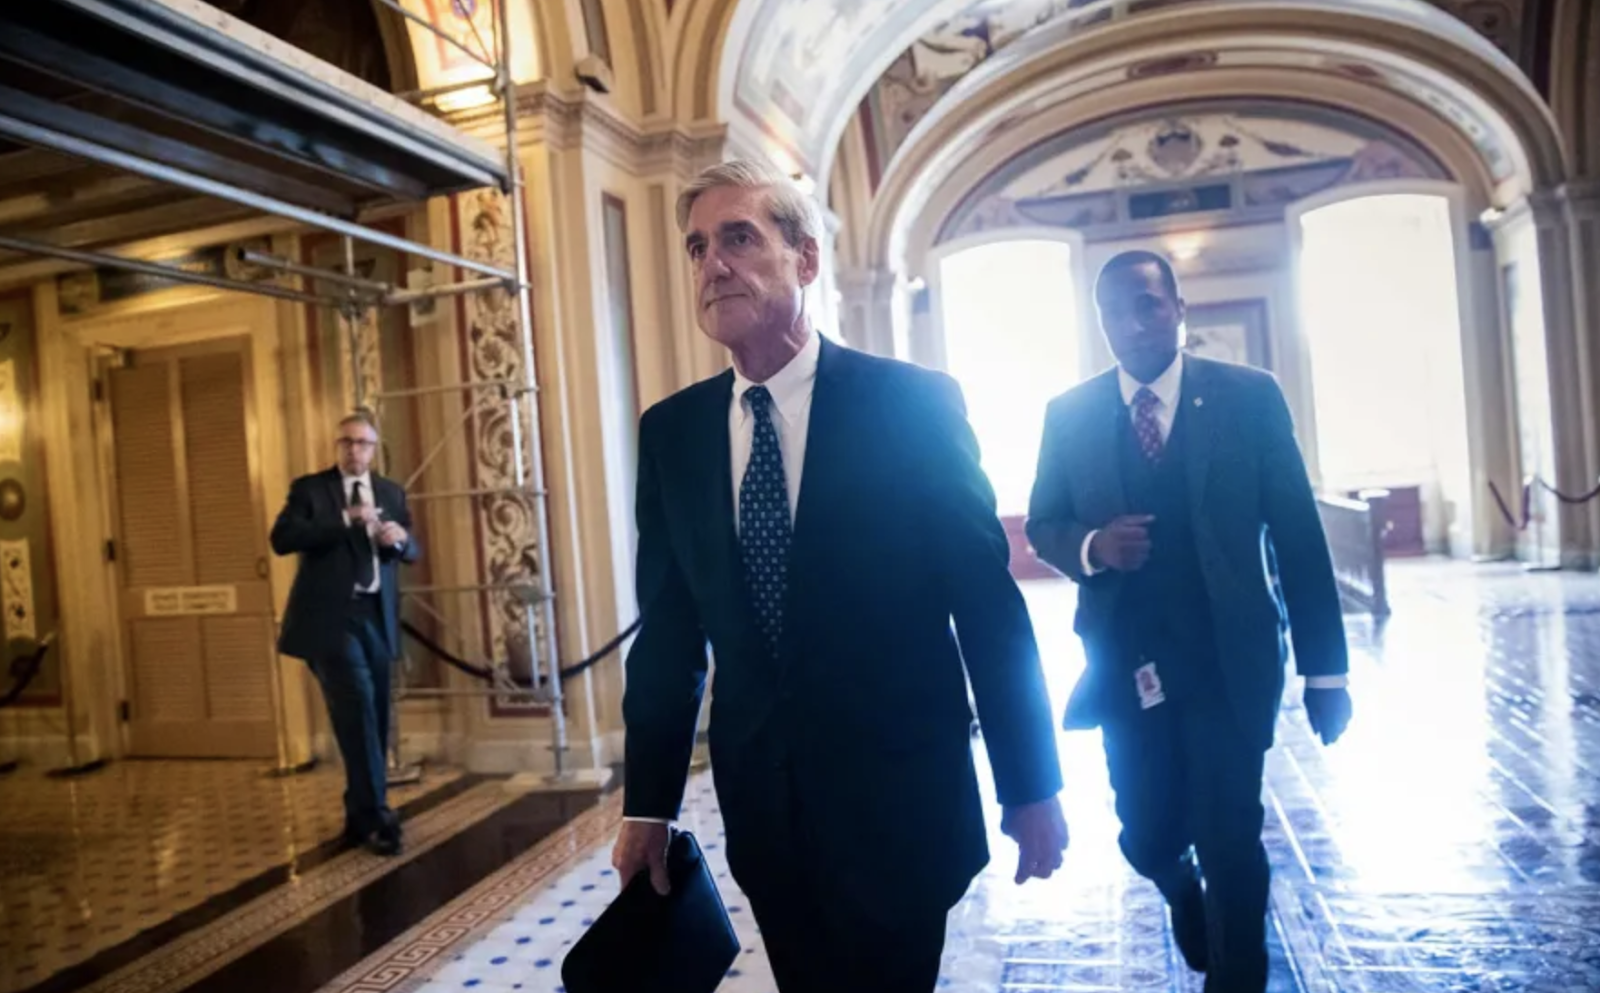 The Special Counsel investigation, led by Robert Mueller, lasted for 22 months. Photo: J. Scott Applewhite/ AP